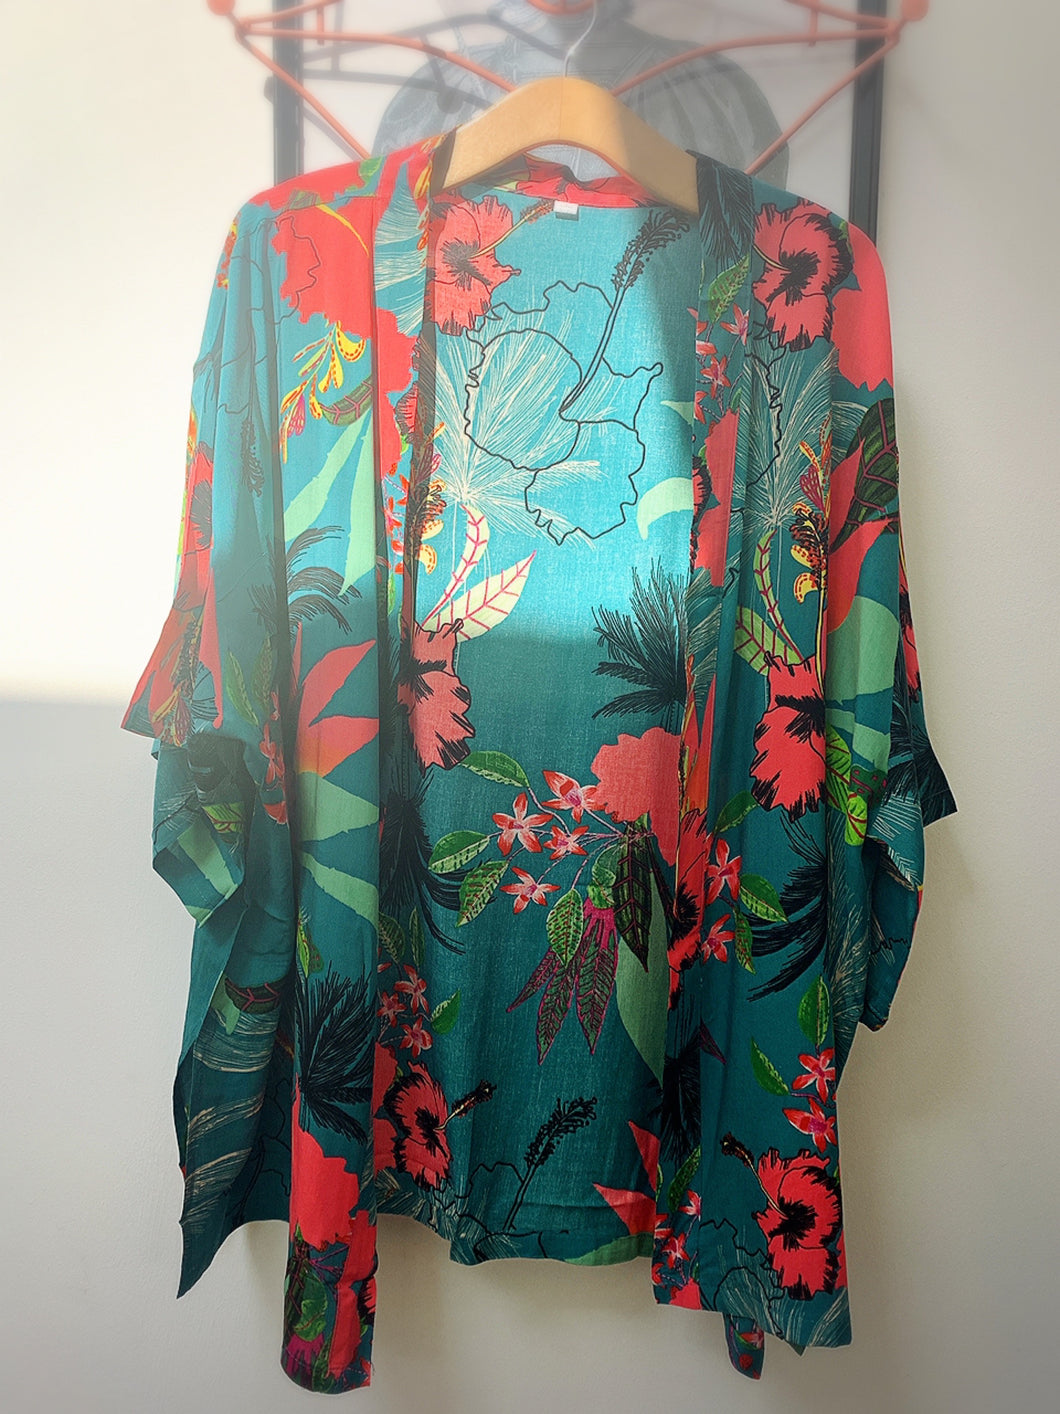 Betsy Open Shirt - Hawaii Floral